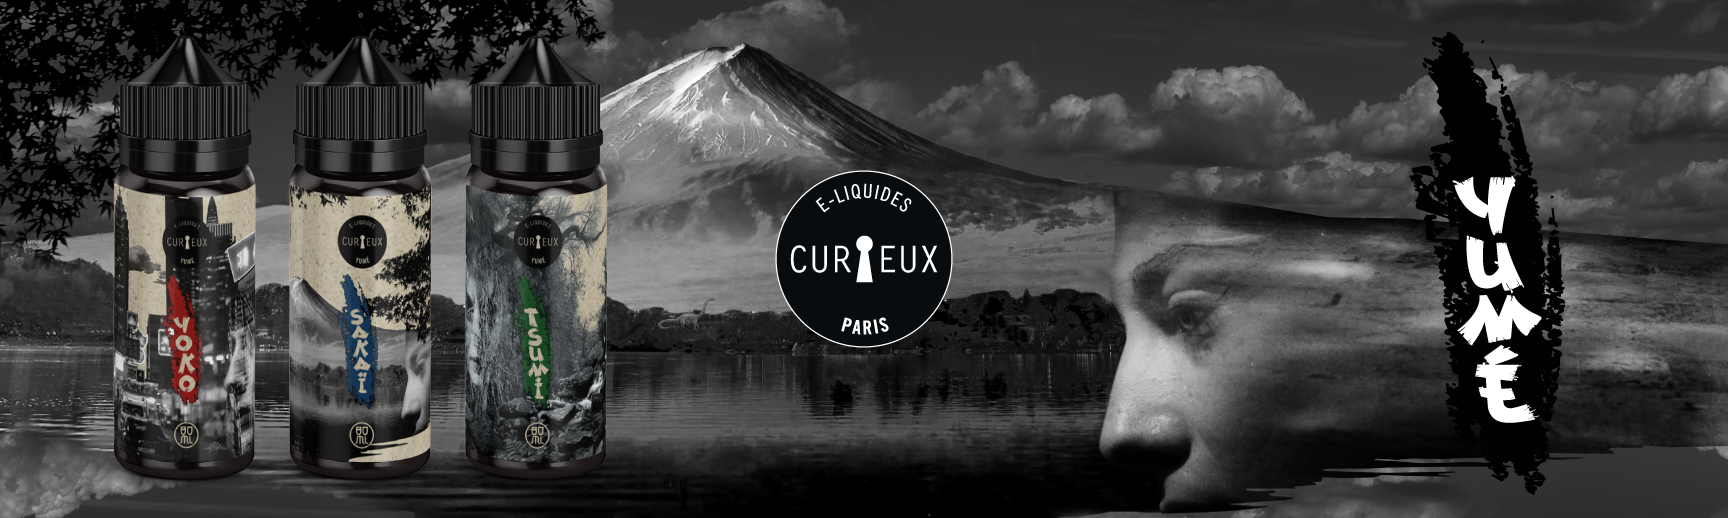 curieux-yume-1728x518.png